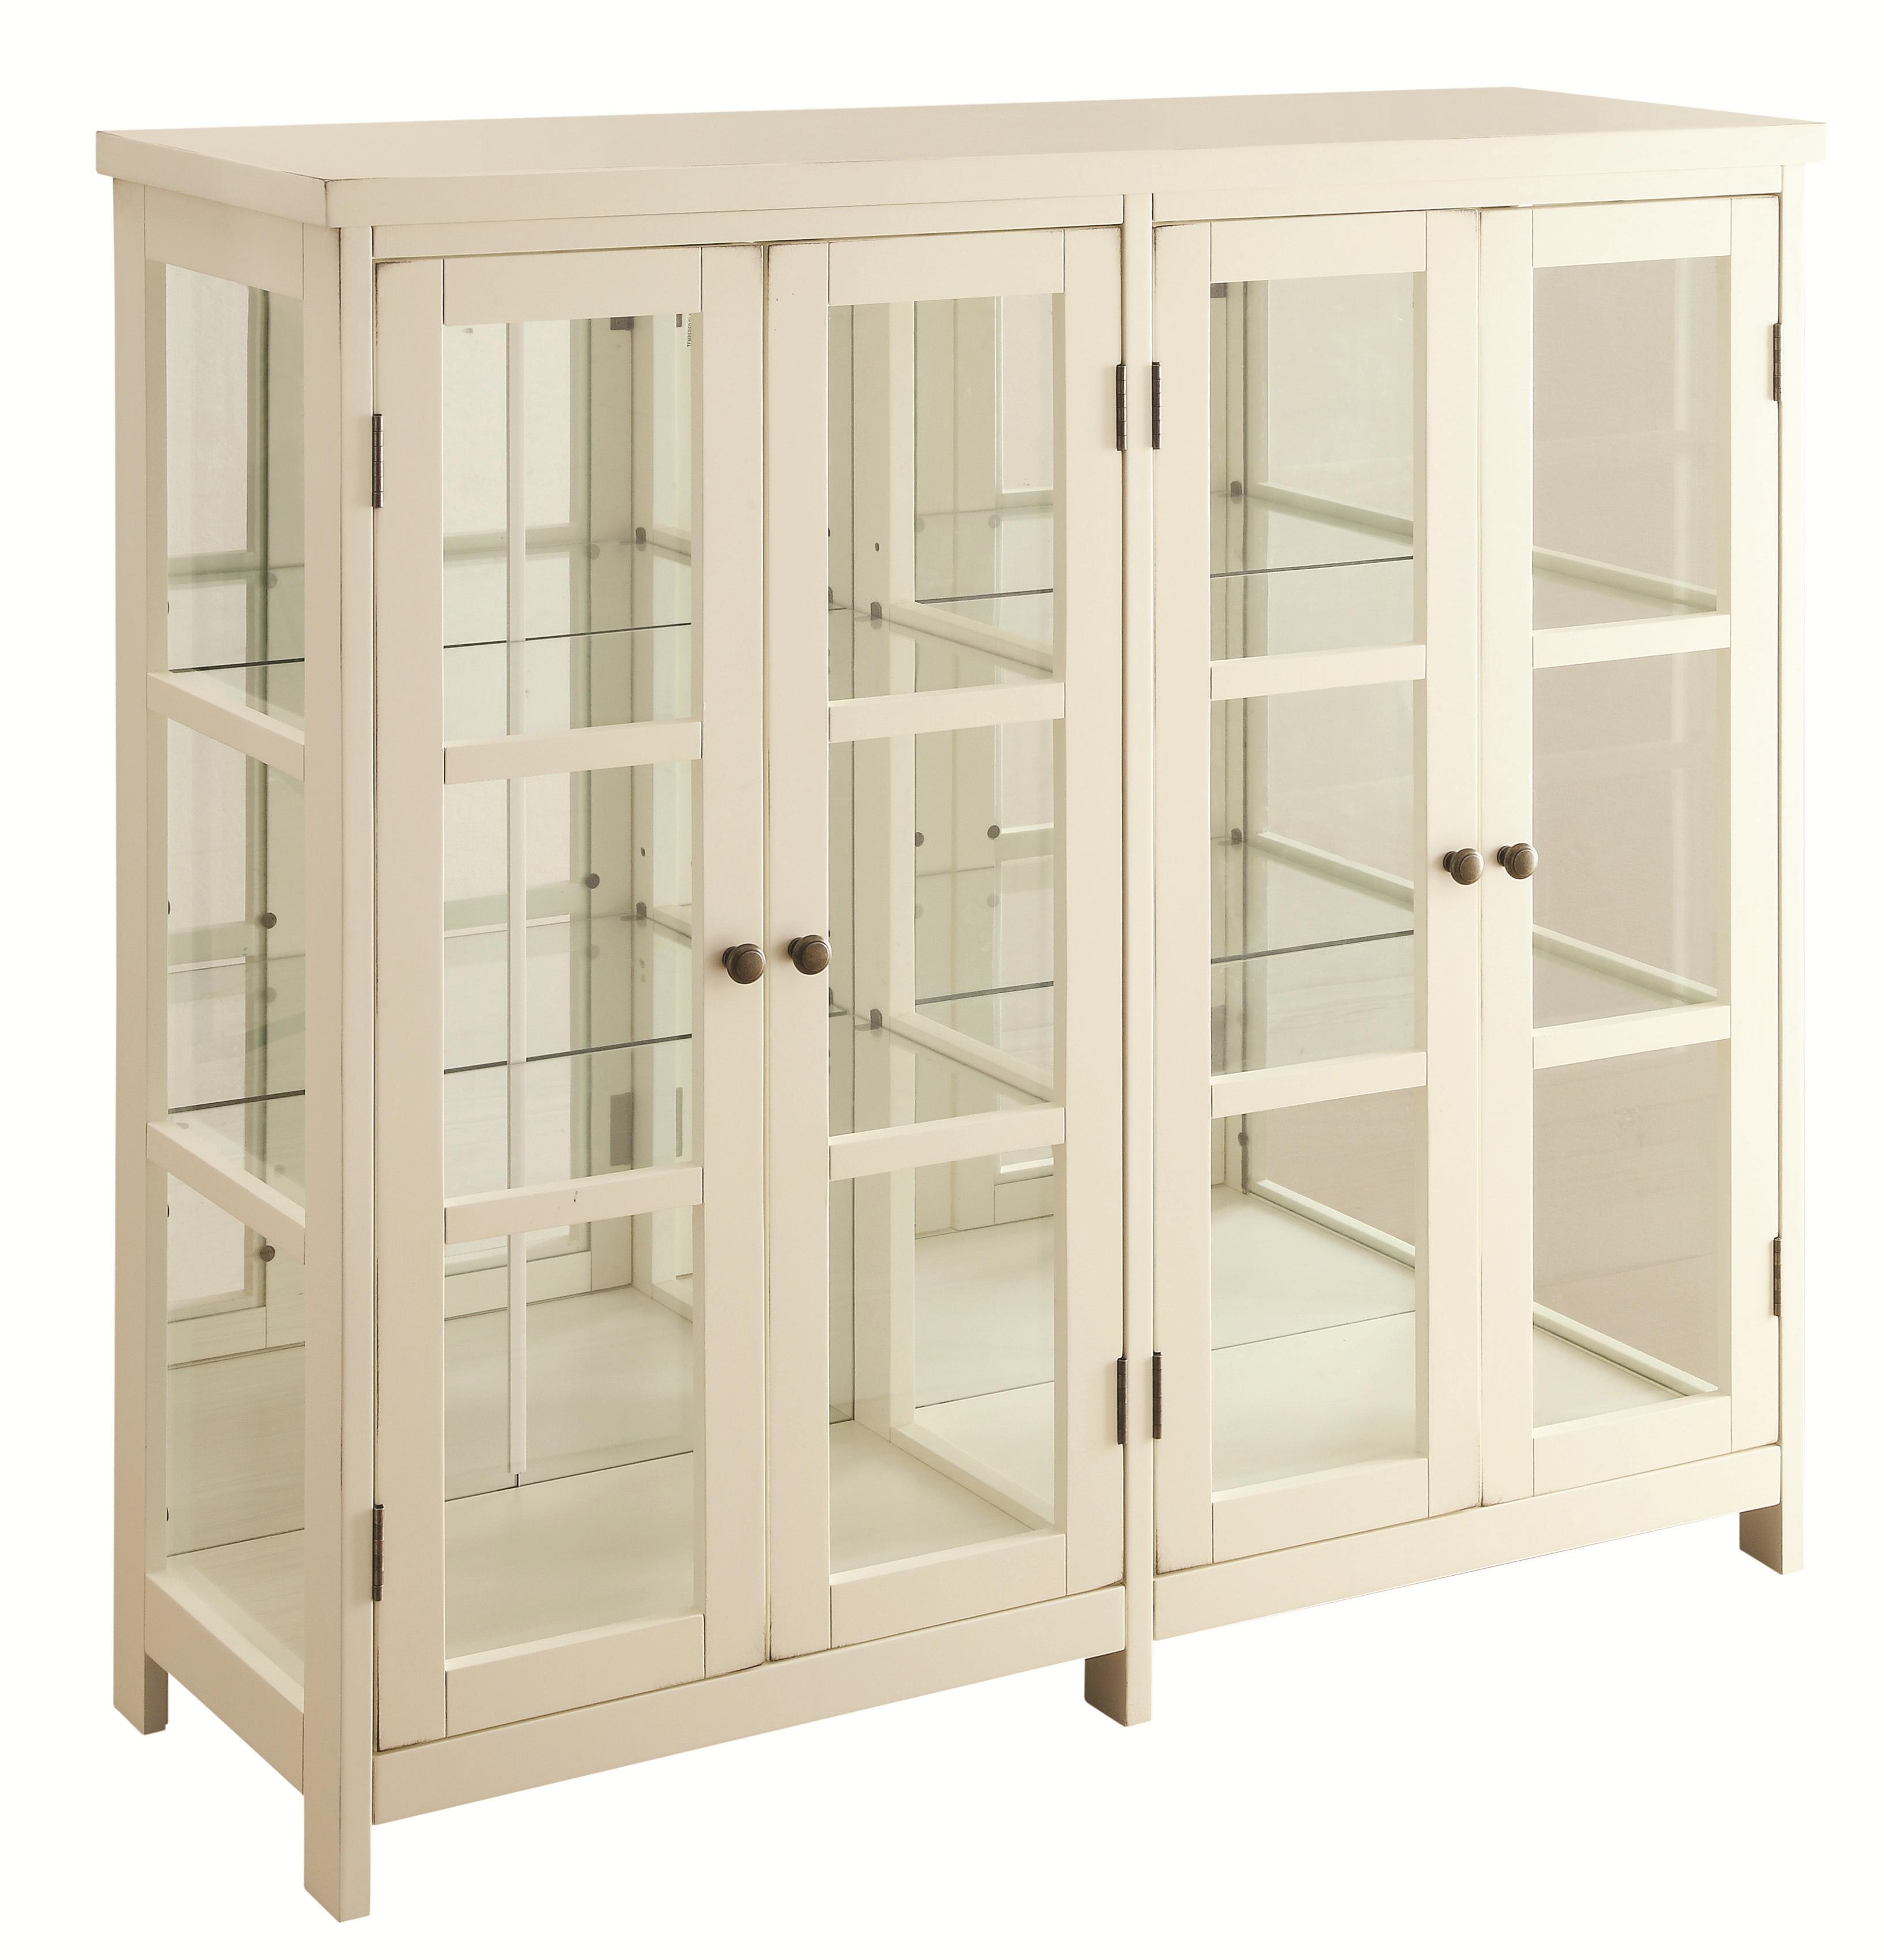 Coaster Accent Cabinets Accent Cabinet - Item Number: 950306